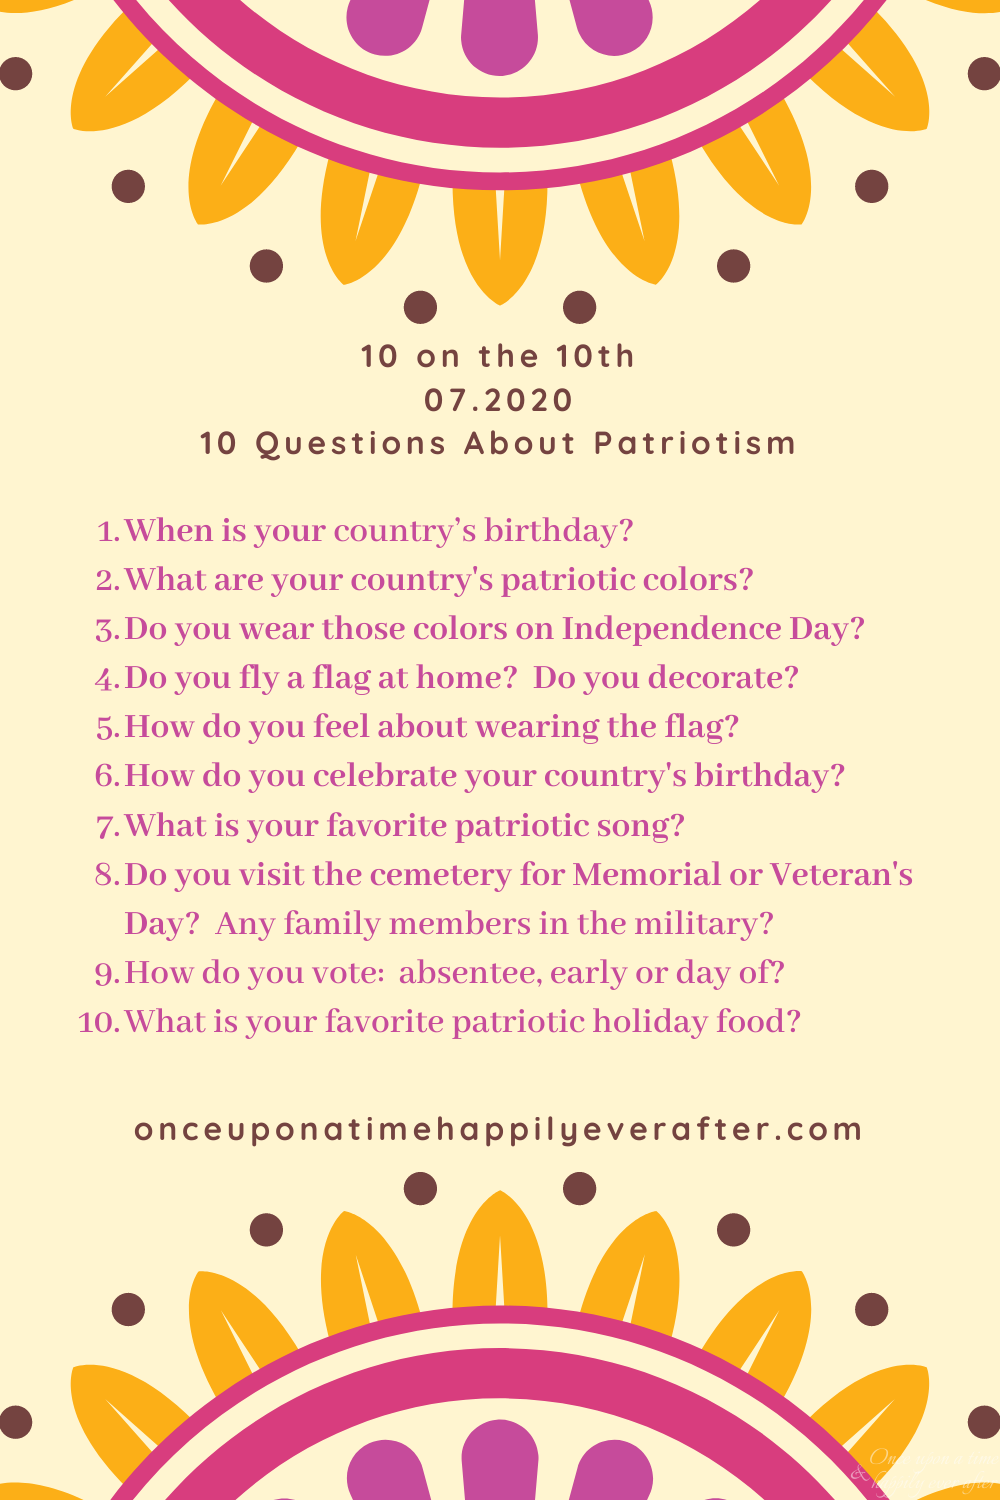 Patriotism: Prompt for July's 10 on the 10th